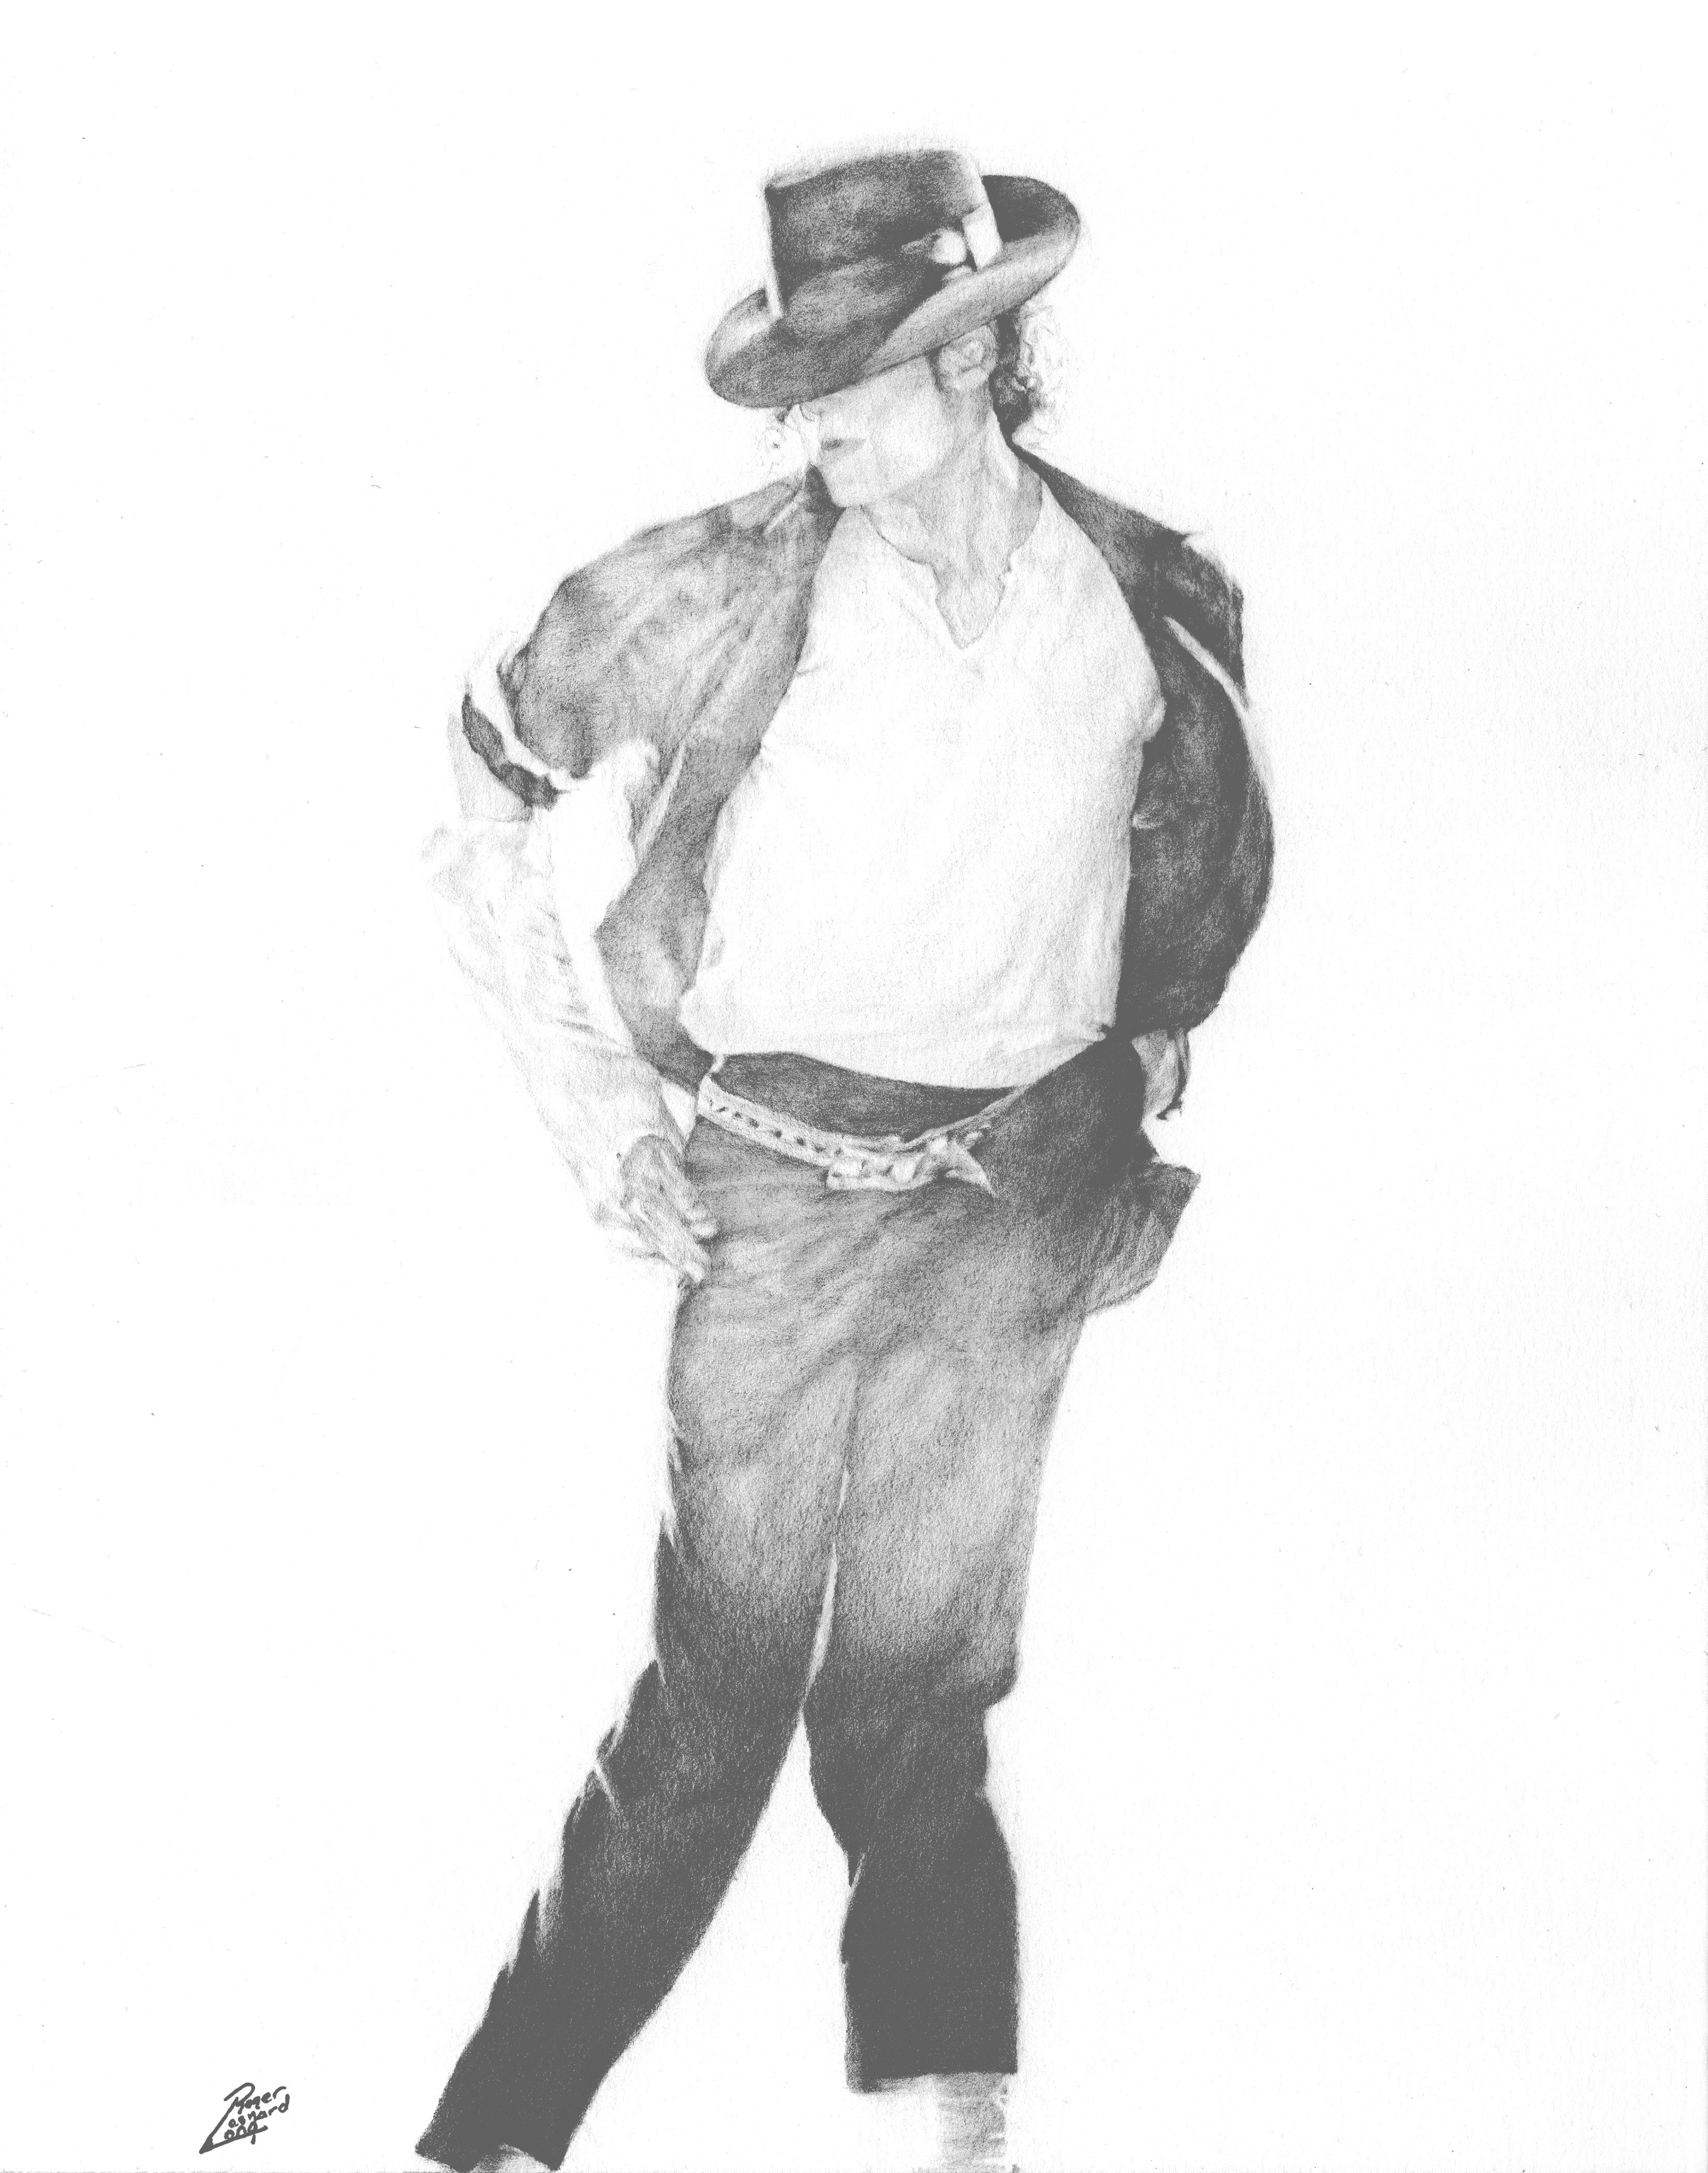 """Moonwalker Graphite You will receive a print of the graphite drawing is one of my photo realism pieces of The King of Pop. It was one I completed due to an overwhelming demand. I plan to do another in the future. Your signed print will be securely delivered with a certificate of authenticity and ready to frame. Note: This print is available in multiple sizes. If you would like to order a custom original or have any questions feel free to visit the """"how to order a custom original"""" page. Thank you for viewing and purchasing!"""